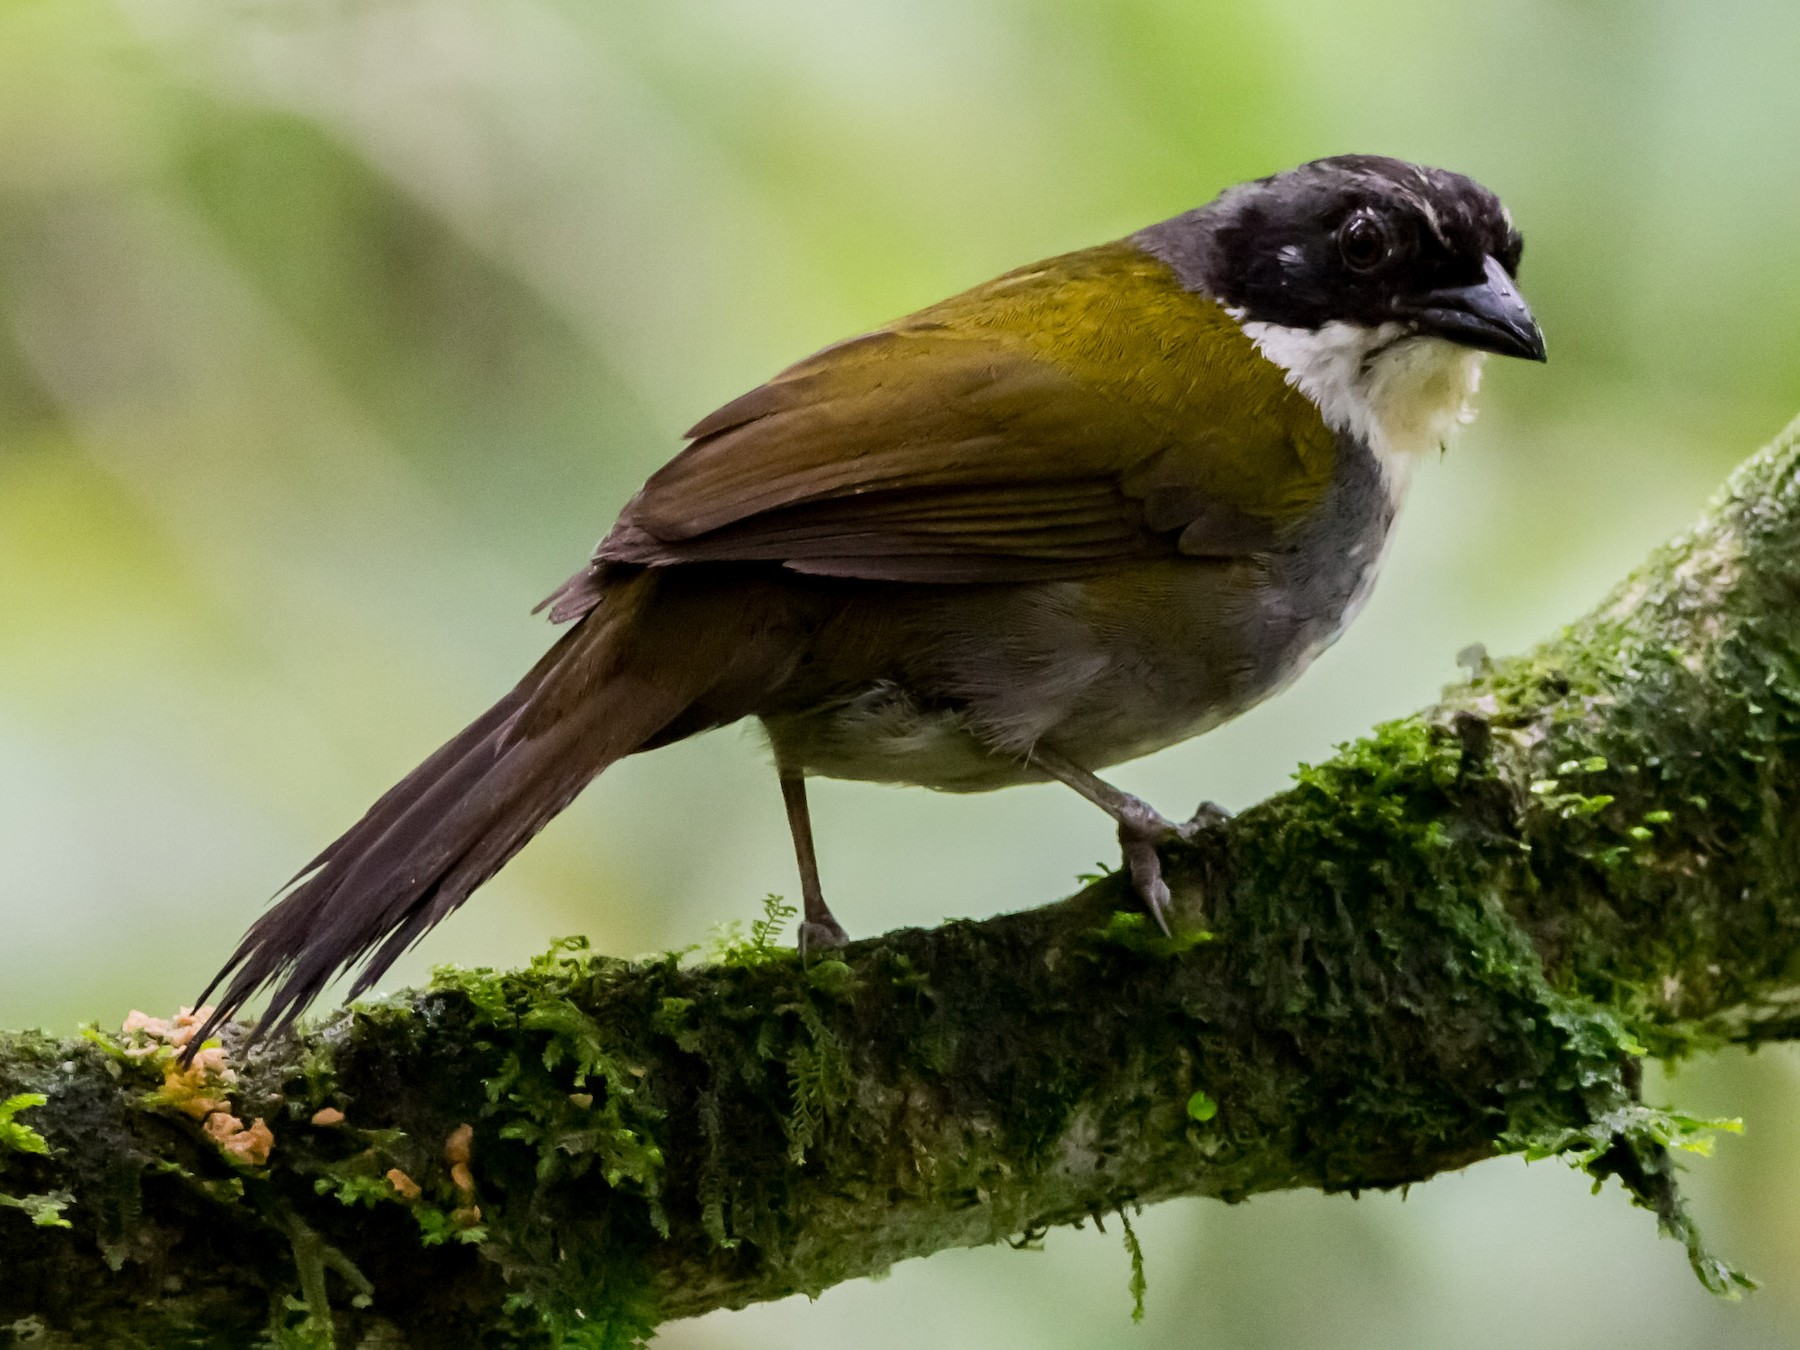 Costa Rican Brushfinch - Pepe Castiblanco